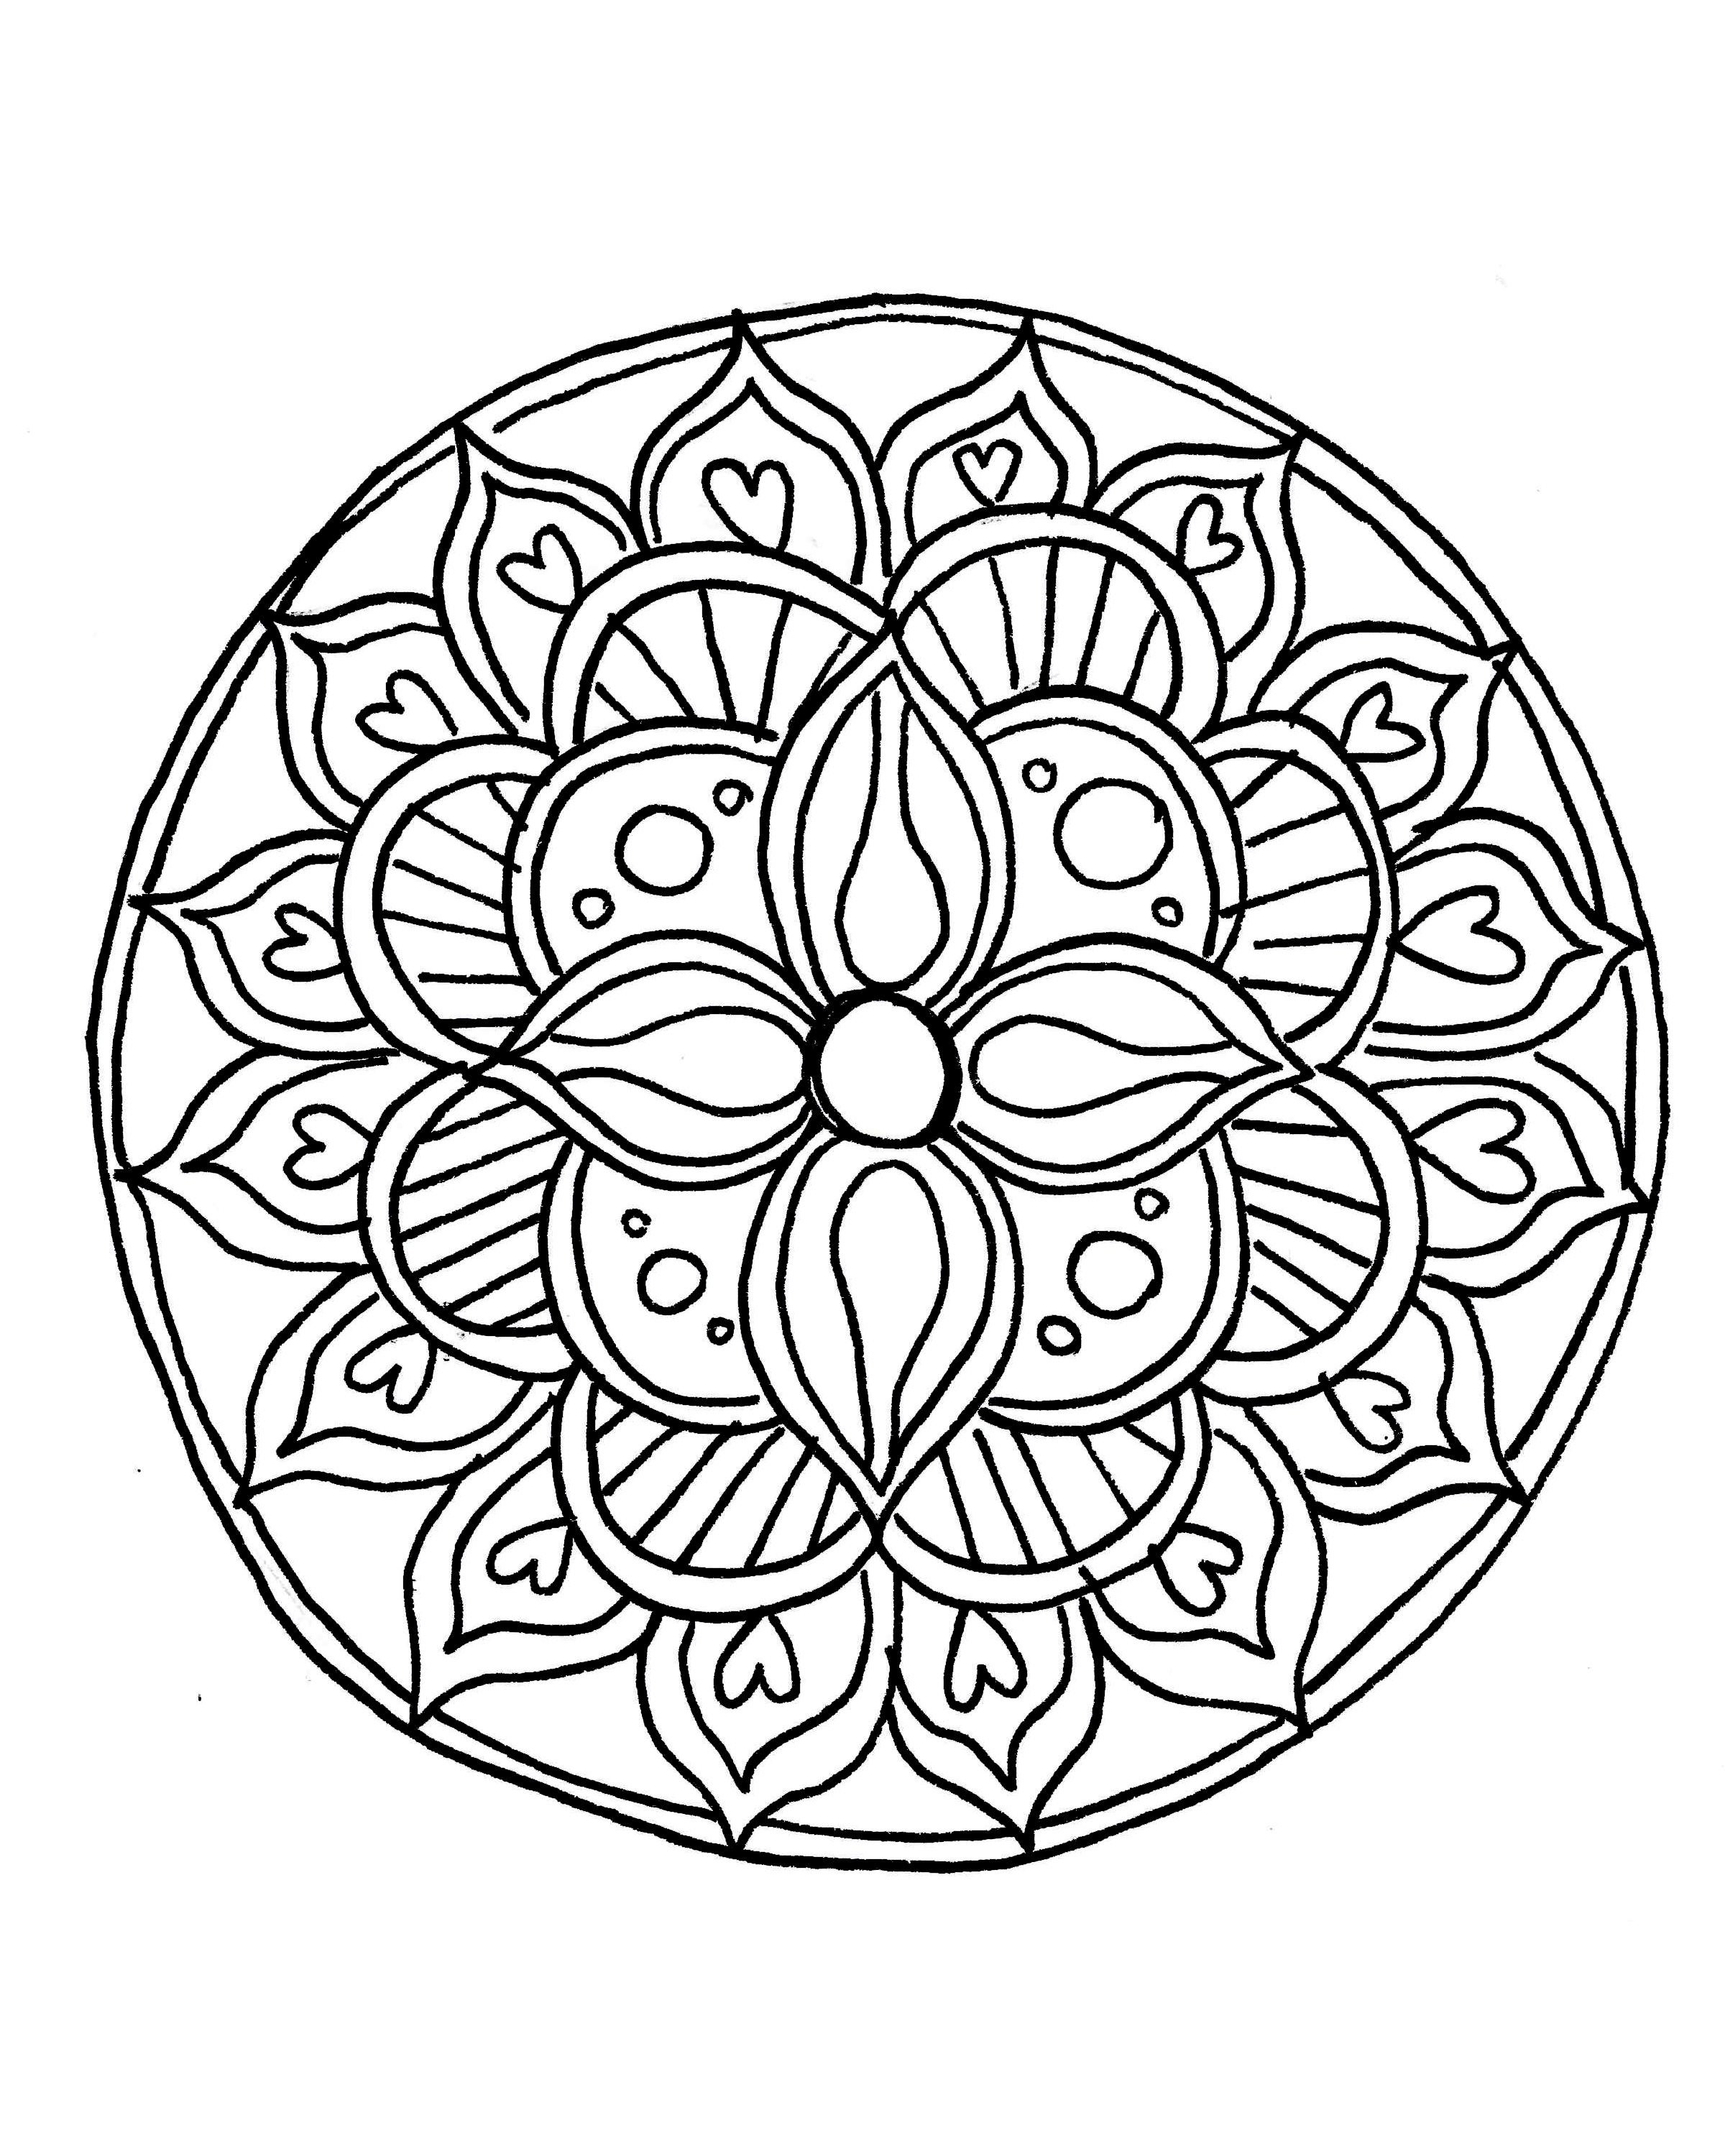 2400x3000 How To Draw A Mandala With FREE Coloring Pages